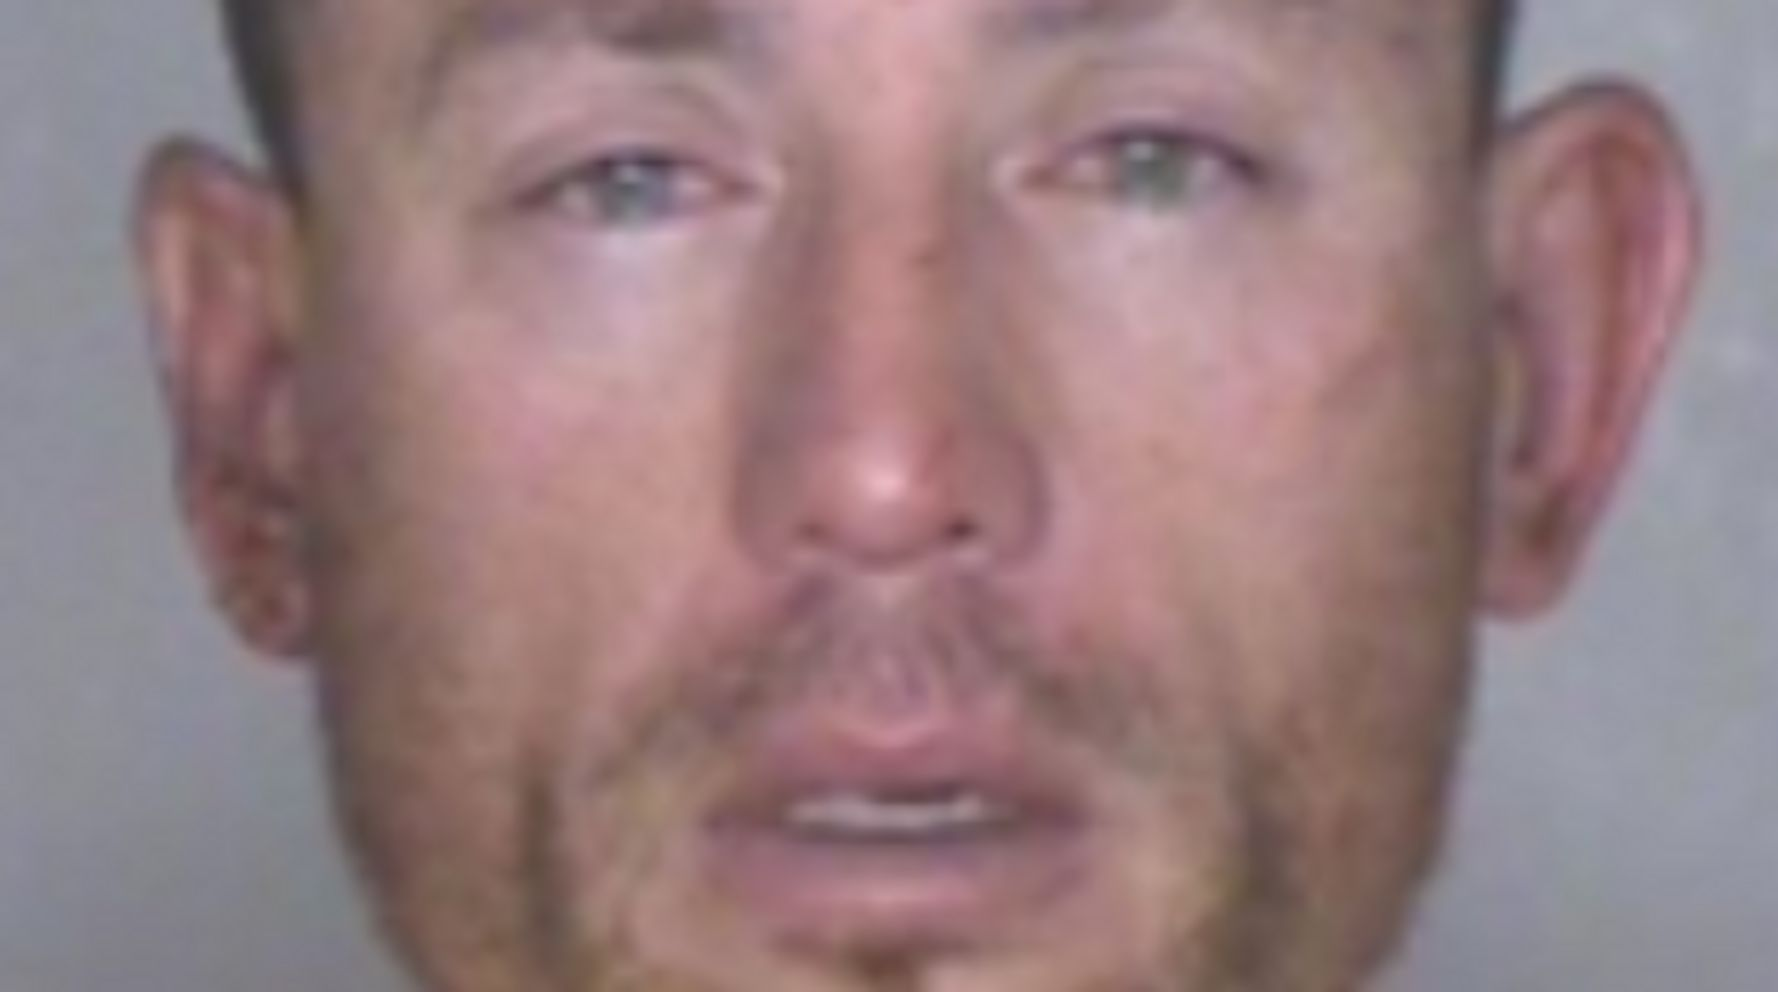 California Tree-Trimmer Charged Over Deadly Throat Slashings That Left 3 Dead